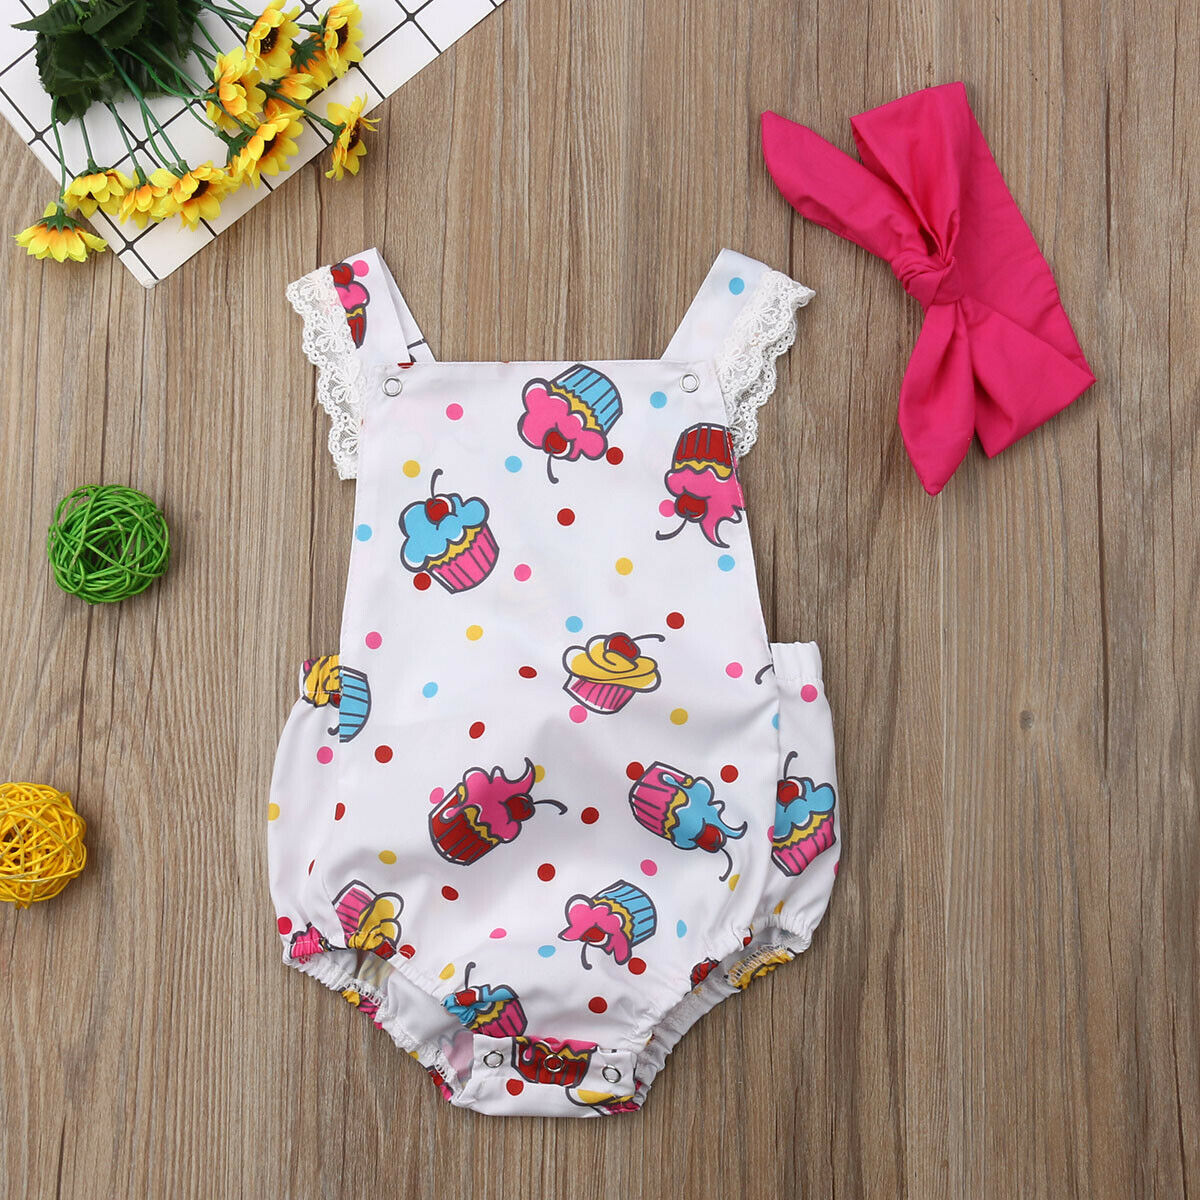 Baby Girl Clothes Ice Cream Print Sleeveless Bodysuit Headband 2pcs Outfit Clothes SunsuitBaby Girl Clothes Ice Cream Print Sleeveless Bodysuit Headband 2pcs Outfit Clothes Sunsuit